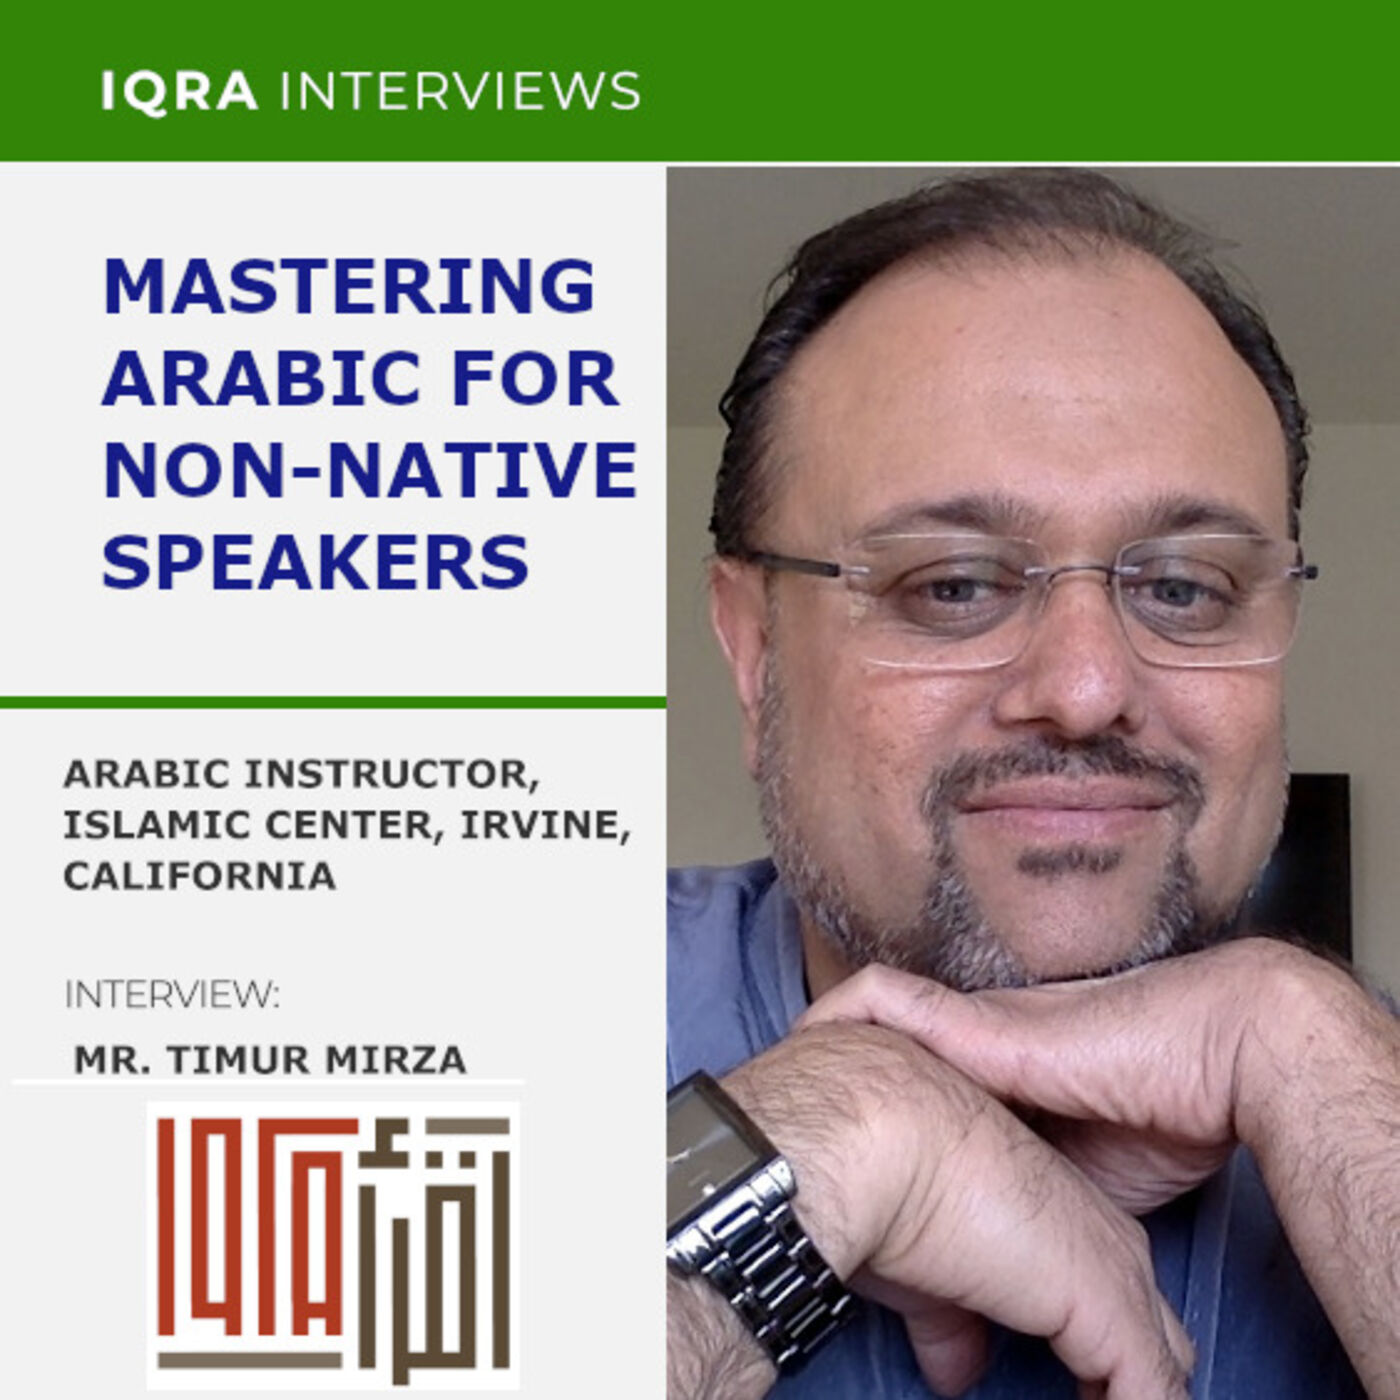 Mastering Arabic for Non-Native Speakers | Interview with Mr. Timur Mirza